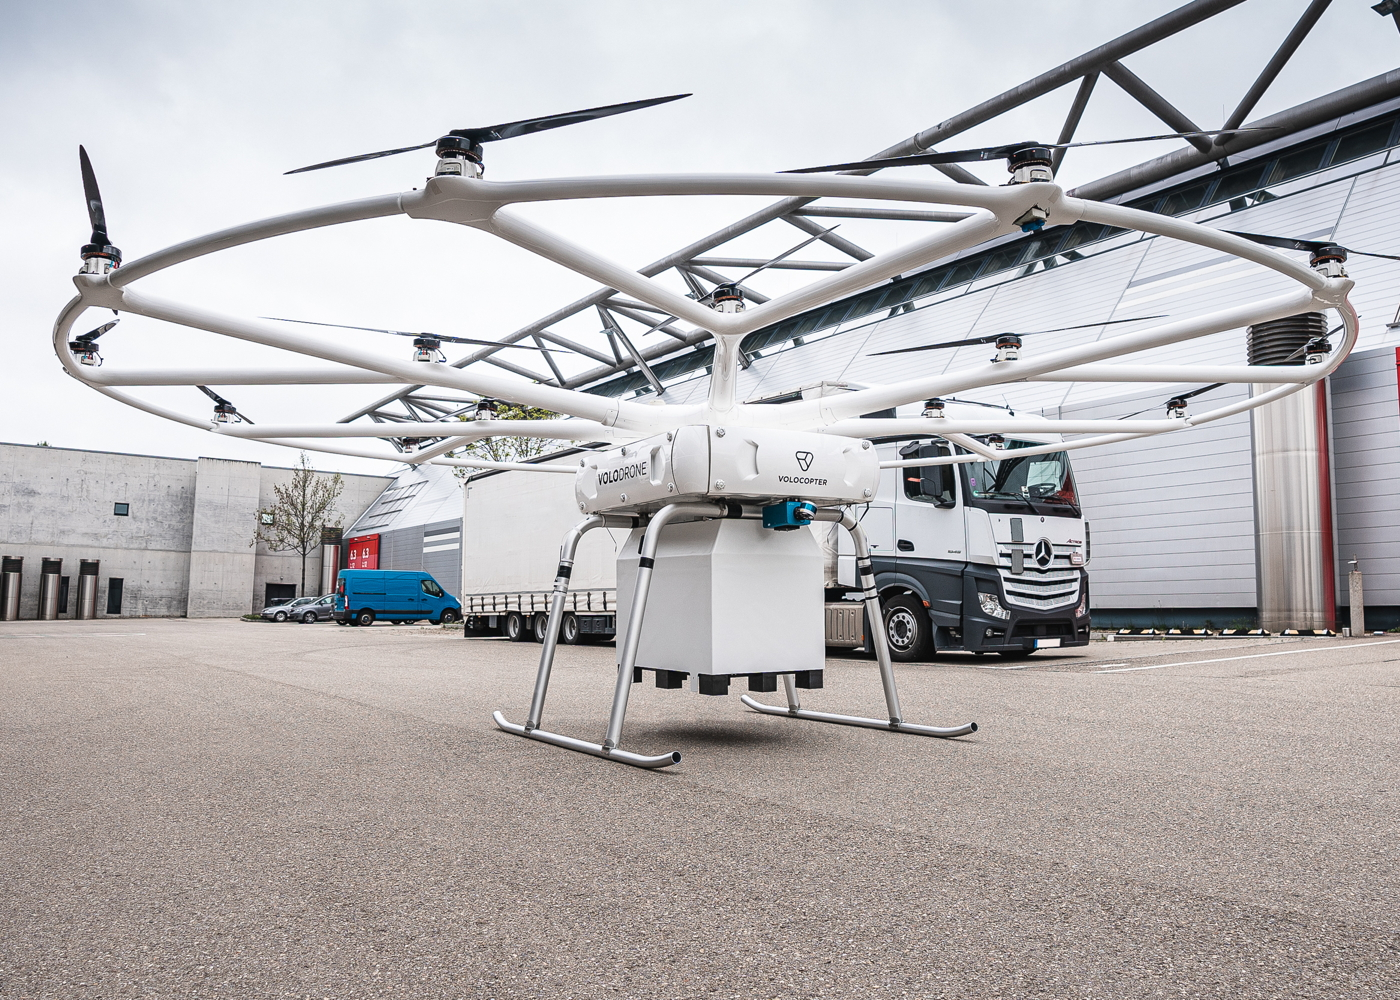 Volocopter VoloDrone with Near Earth Autonomy